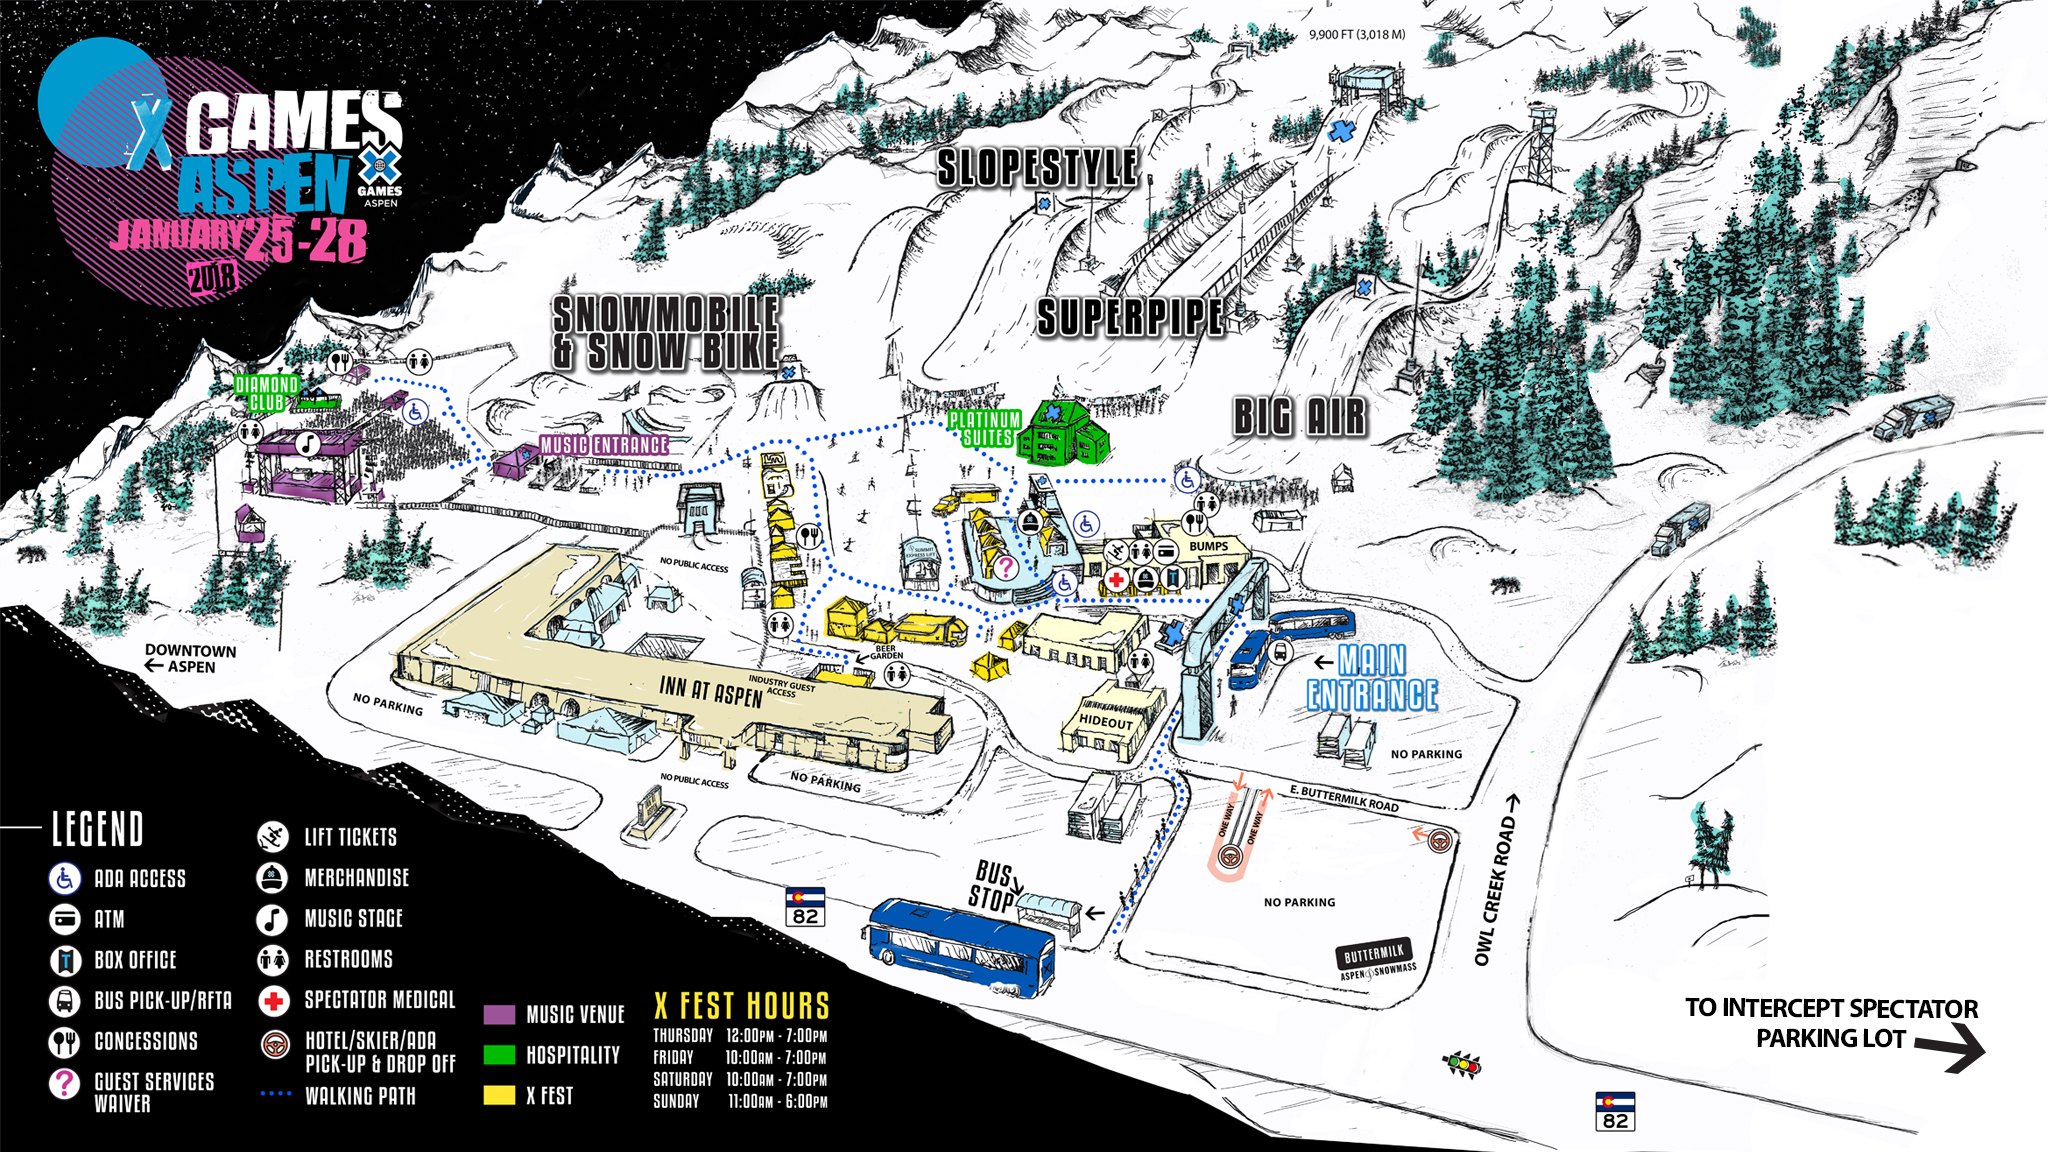 X Games Aspen 2020.X Games Aspen 2018 Frequently Asked Questions Faq